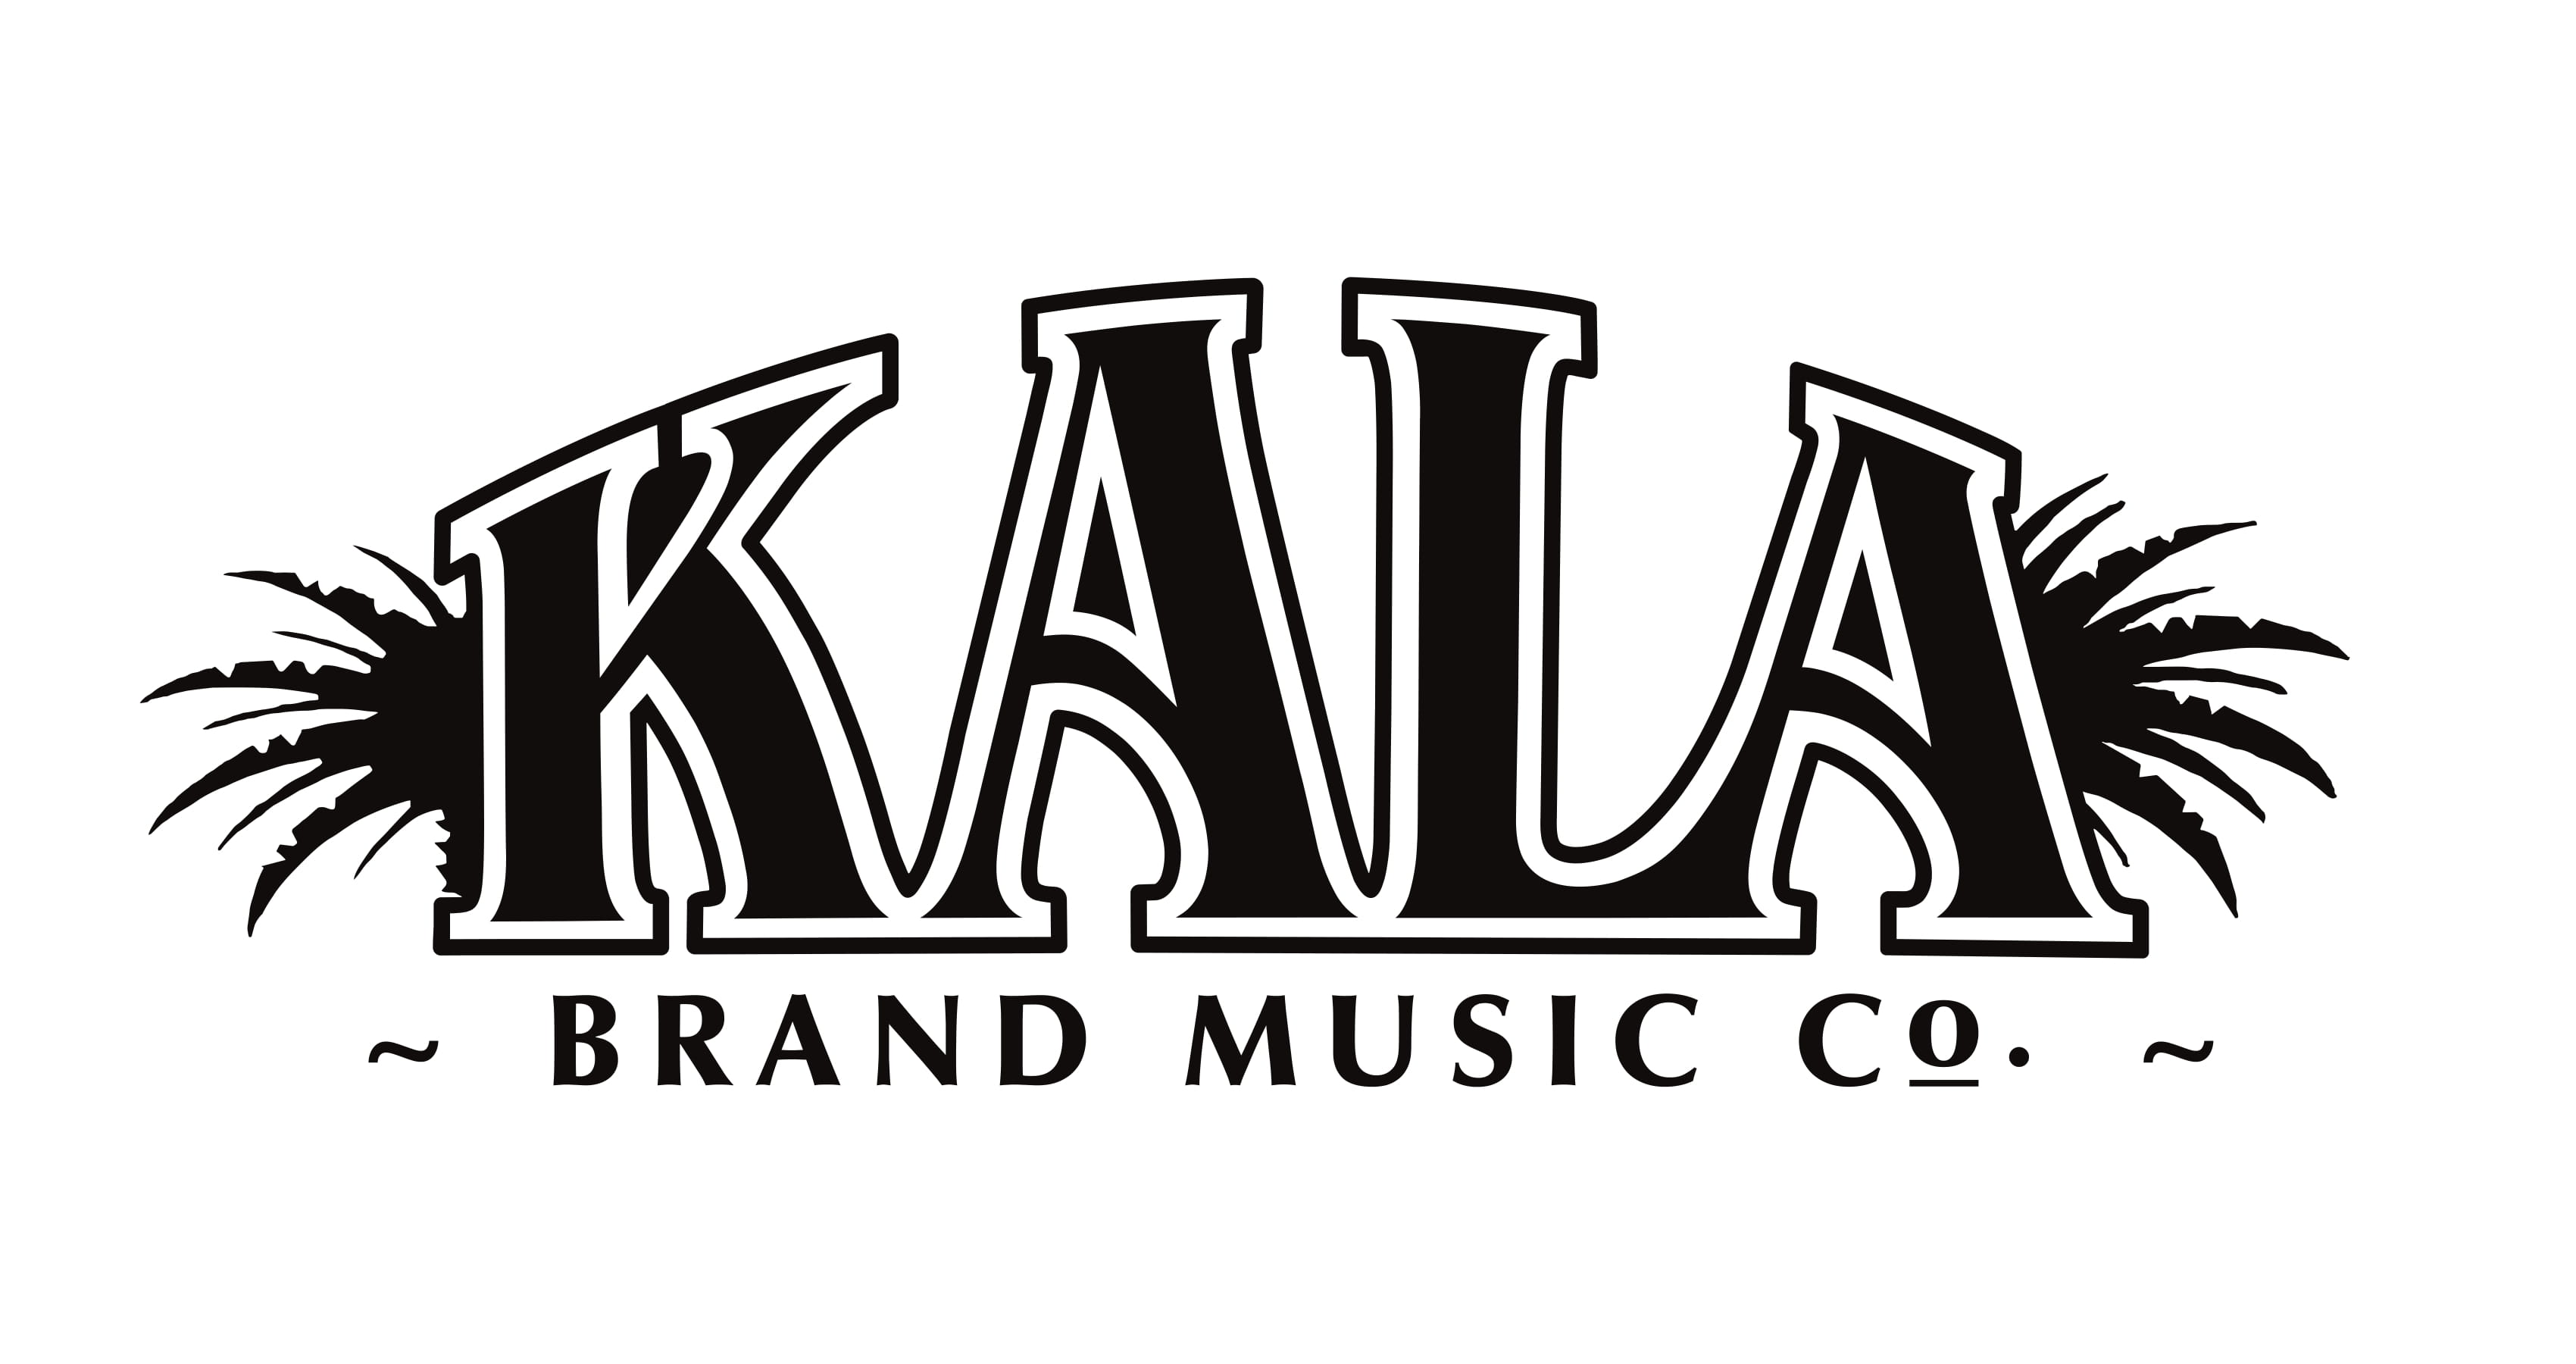 kala-brand-music-co.